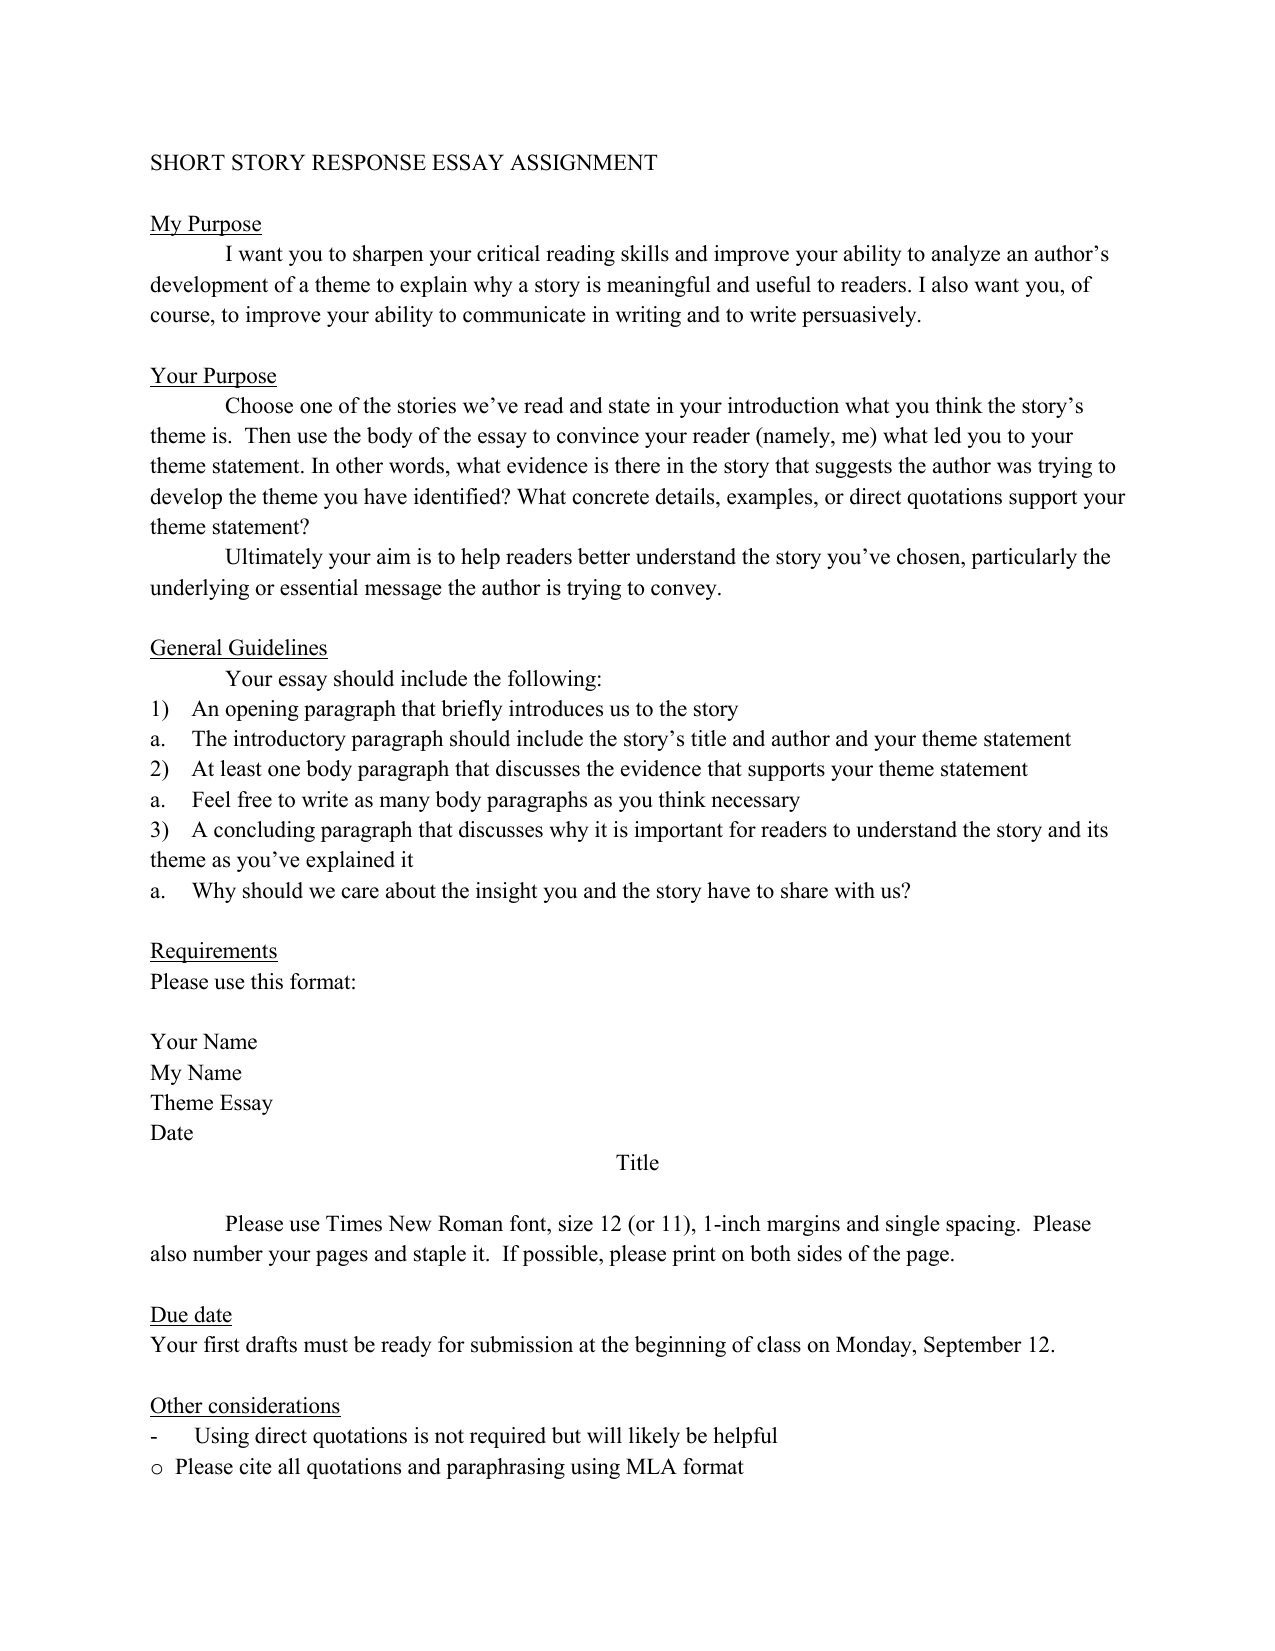 response essays short stories to closing paragraph business letter 022990809 1 a0cee6add6acc5a2f110485854082cd6 response essays short stories - Critical Response Essay Format